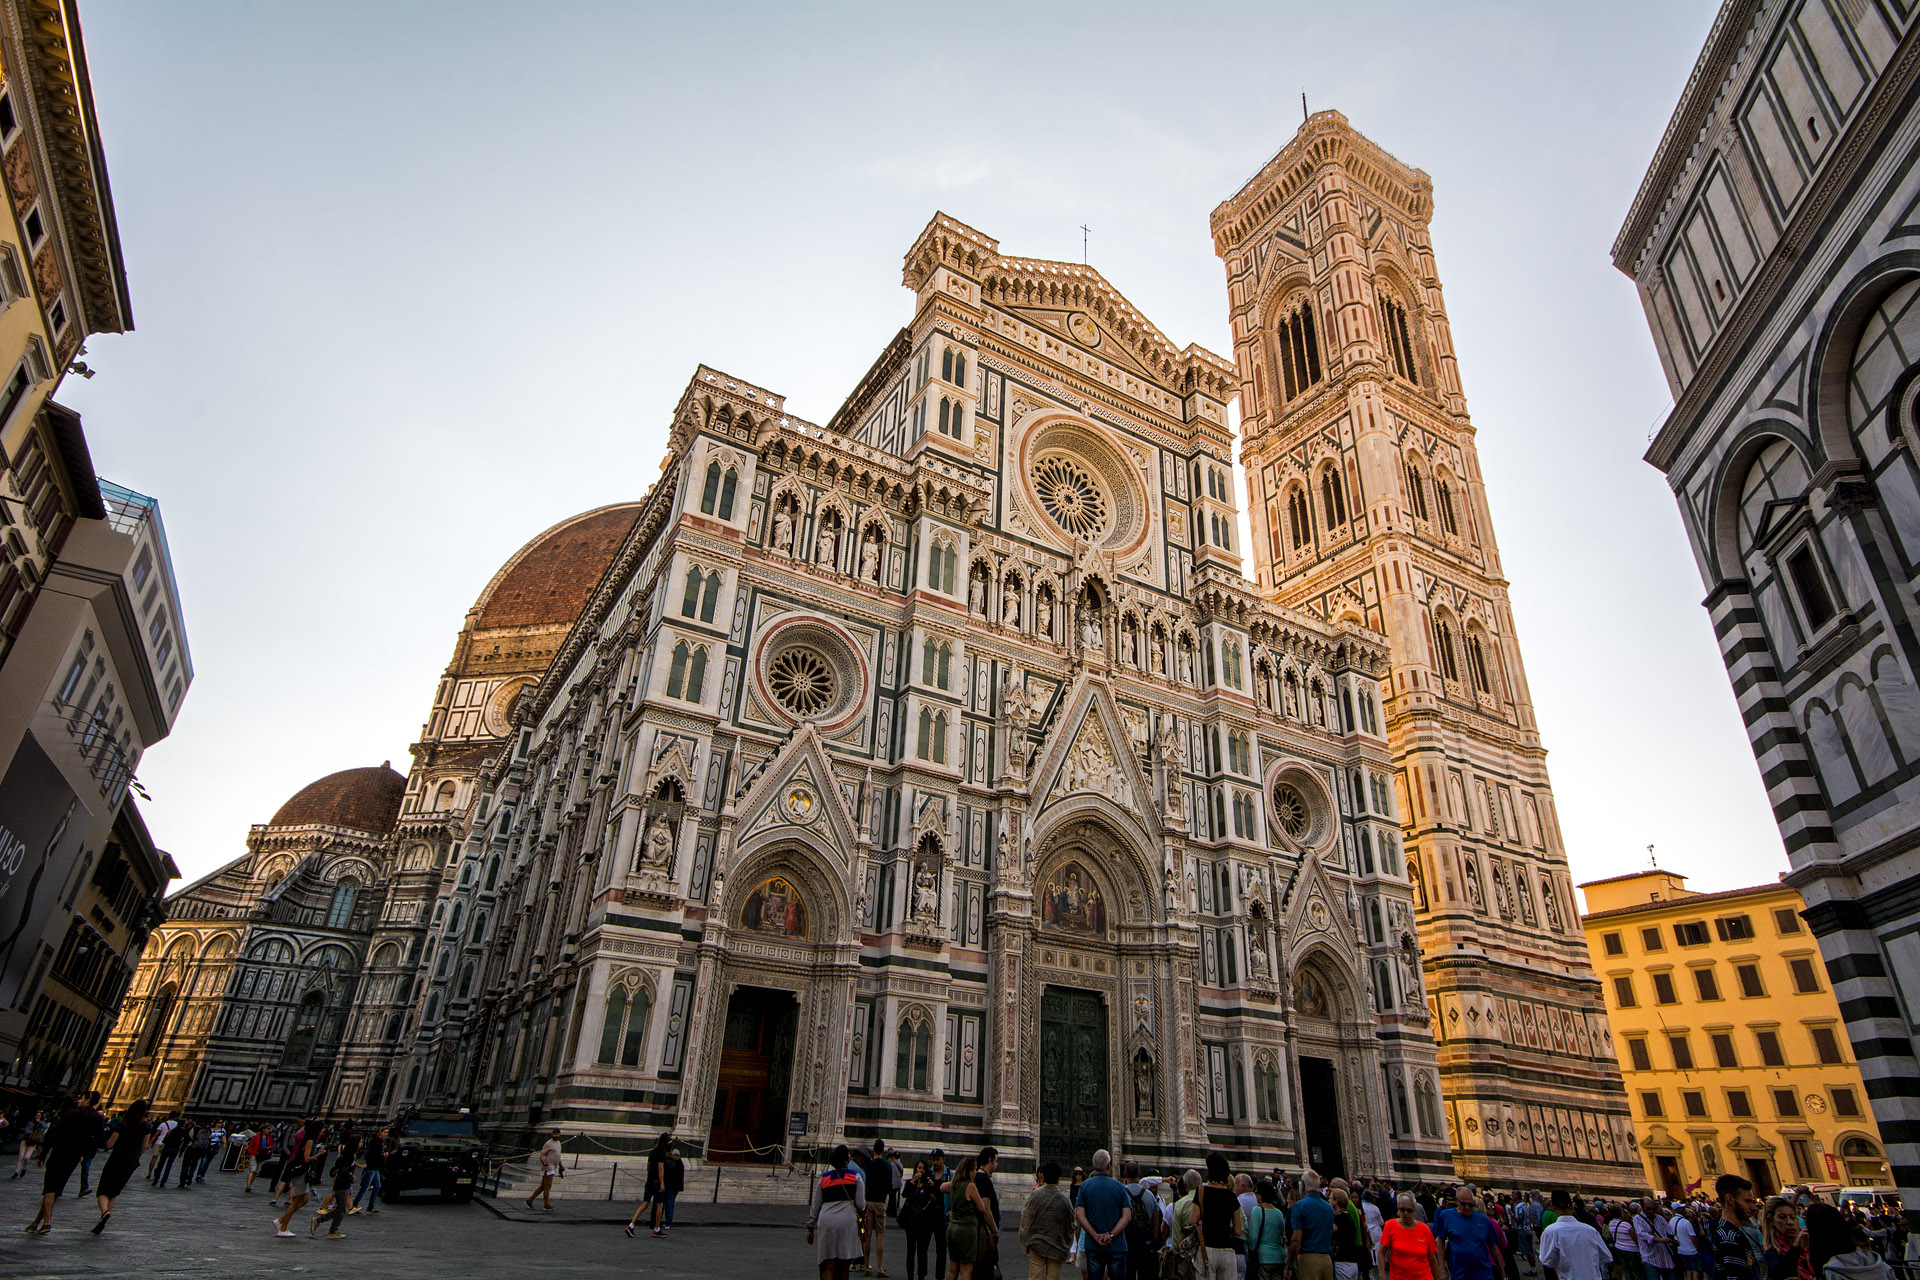 Florence Cathedral (Duomo di Firenze)